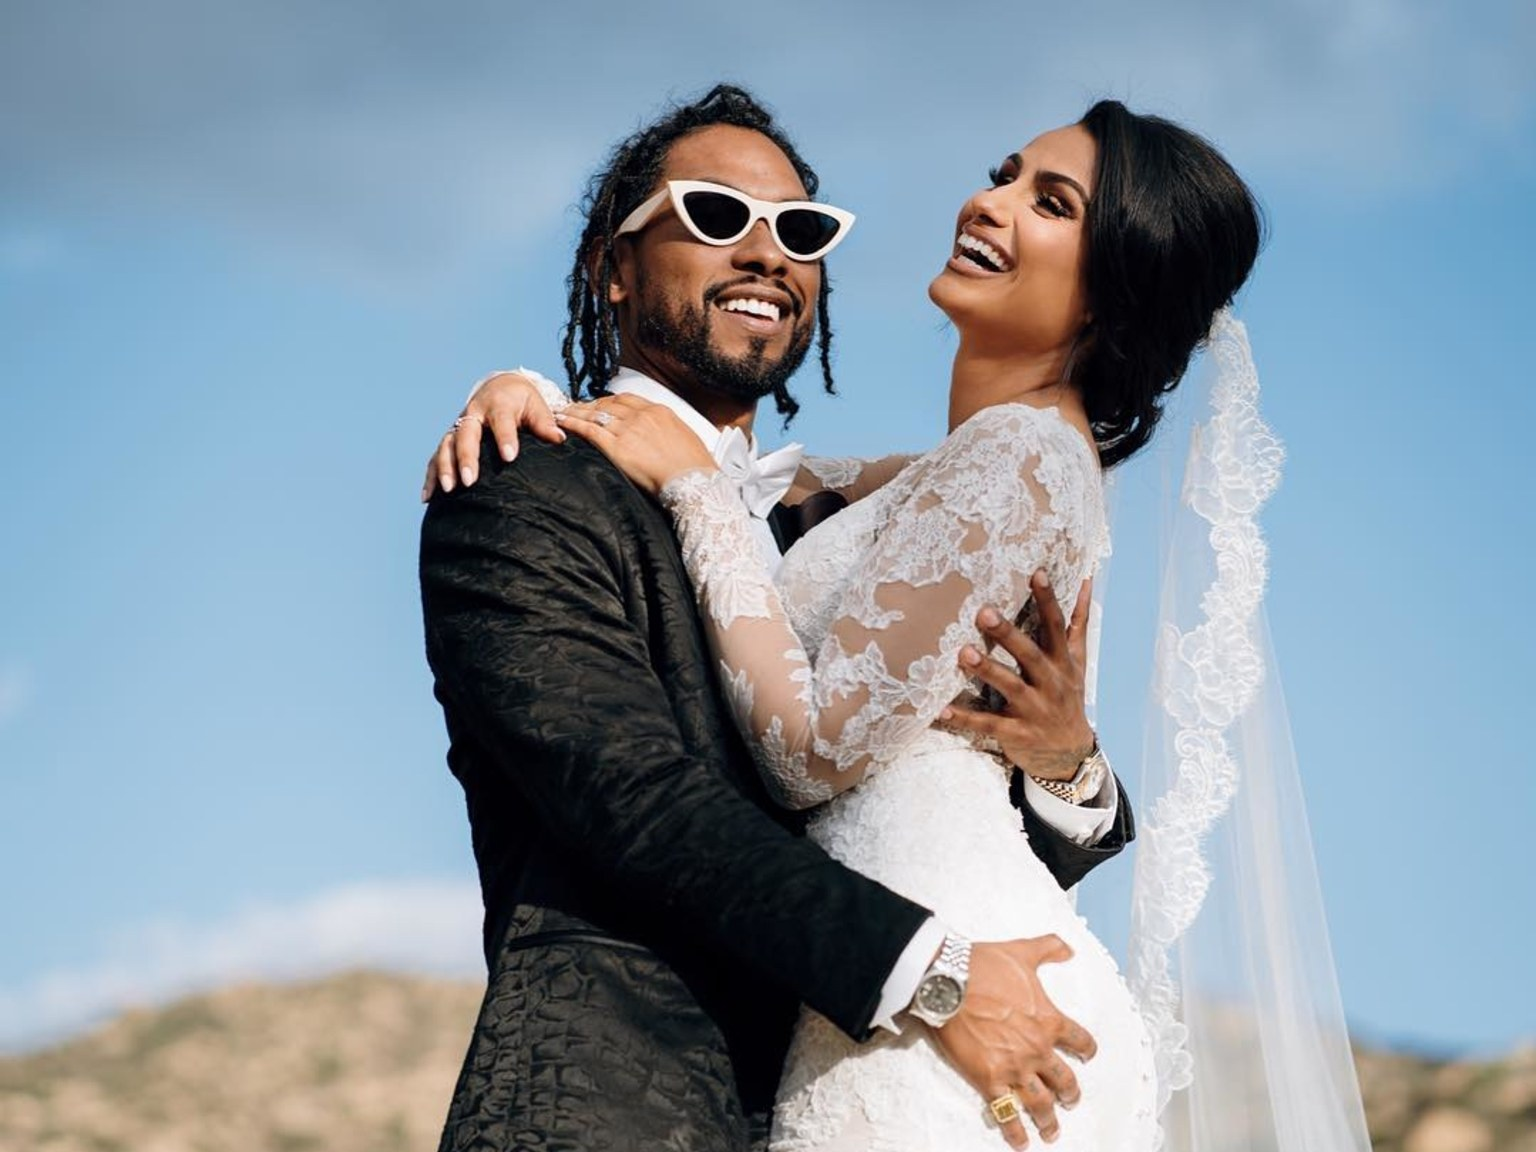 Miguel and Nazanim mandi get married